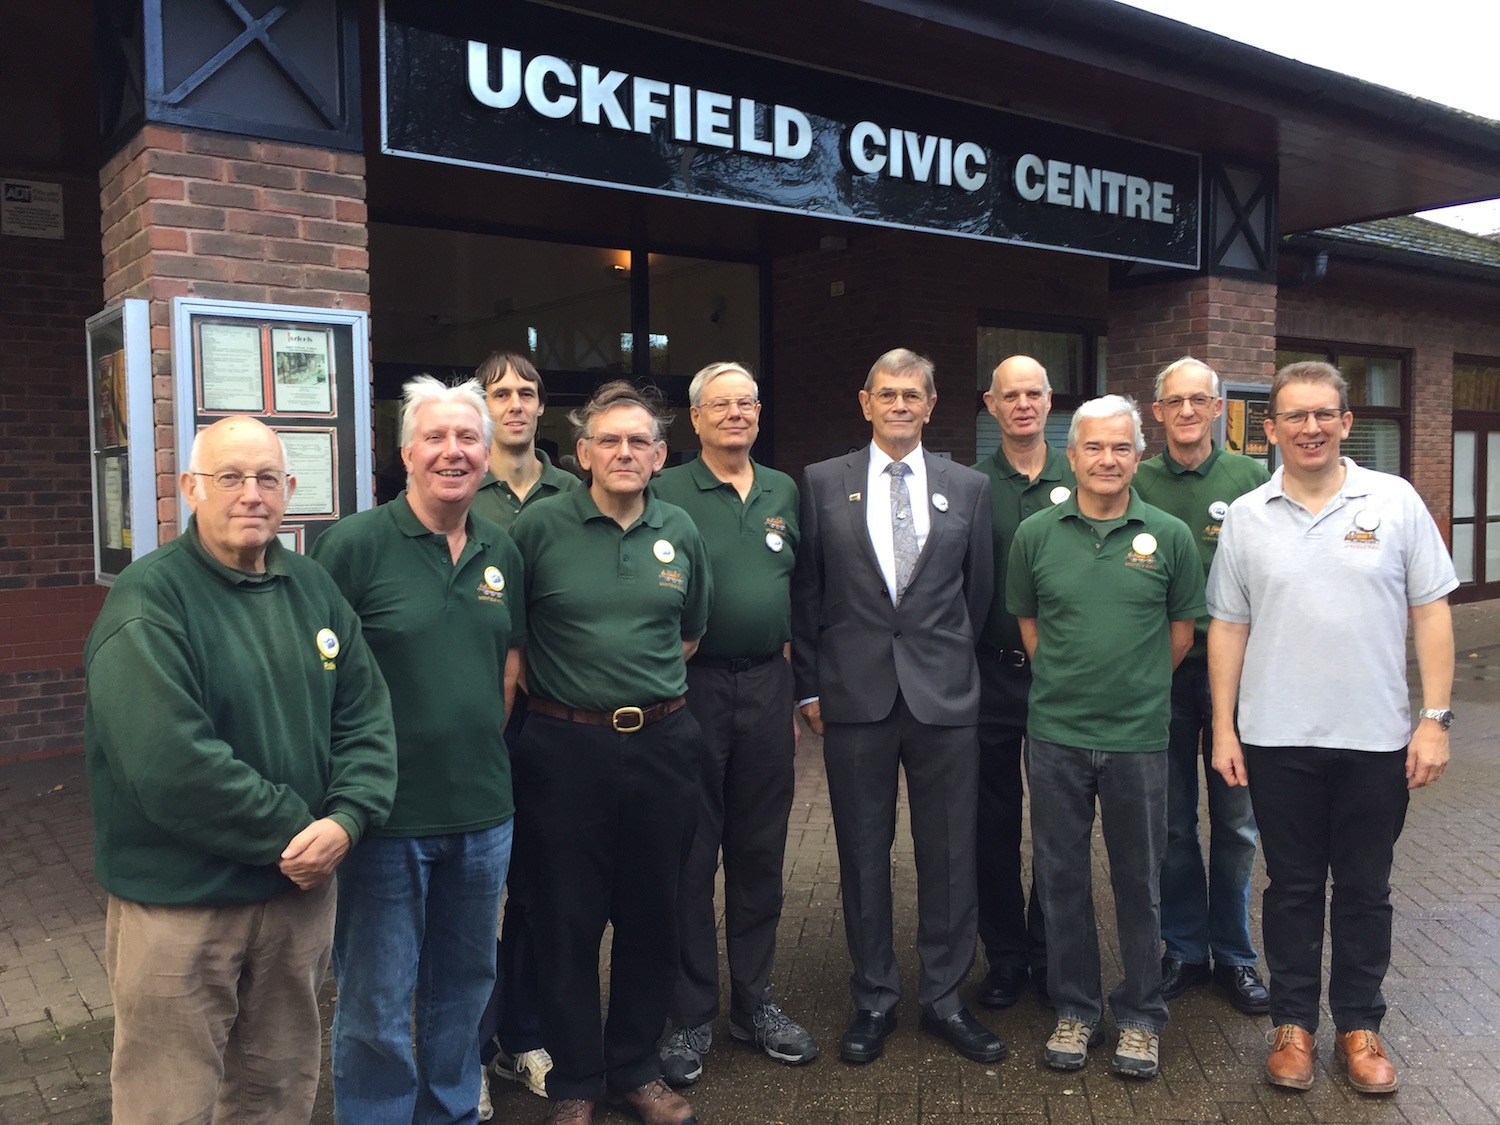 uckfield-model-railway-exhibition-members